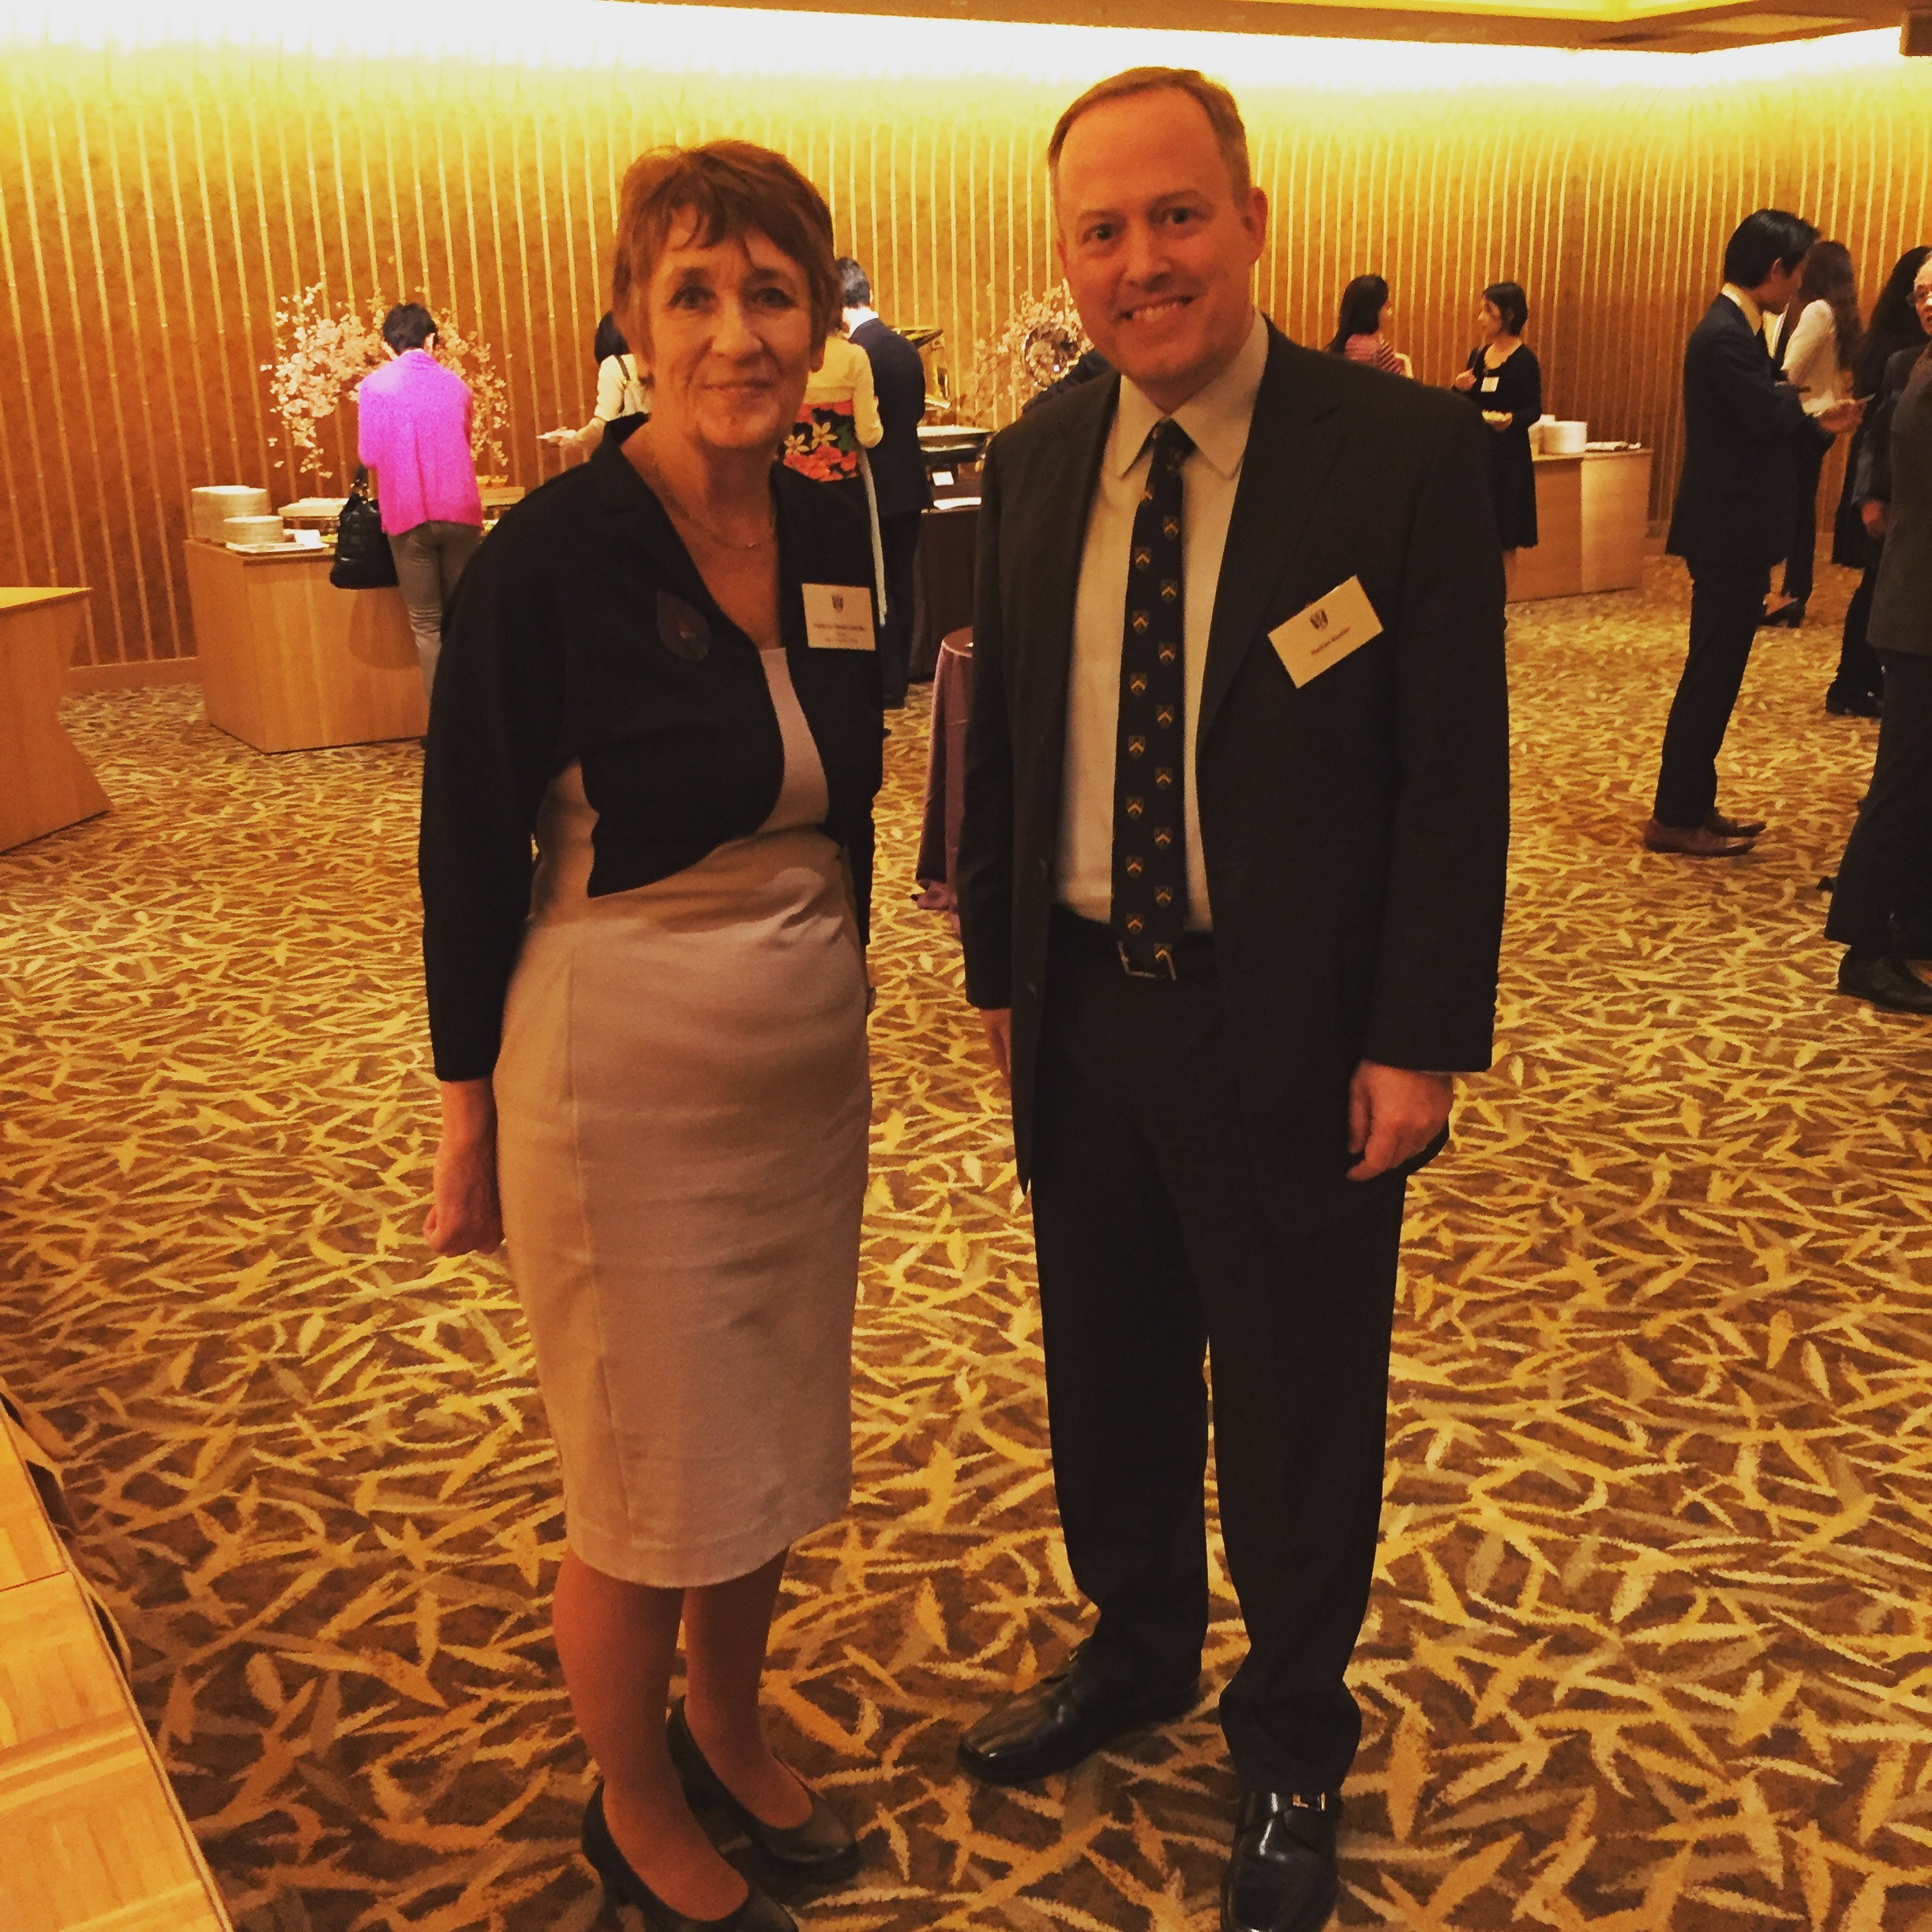 Denise Lievesley and Nathan Ramler launching the Green Templeton Alumni Chapter in Japan at Meeting Minds in Asia, 22 March 2019